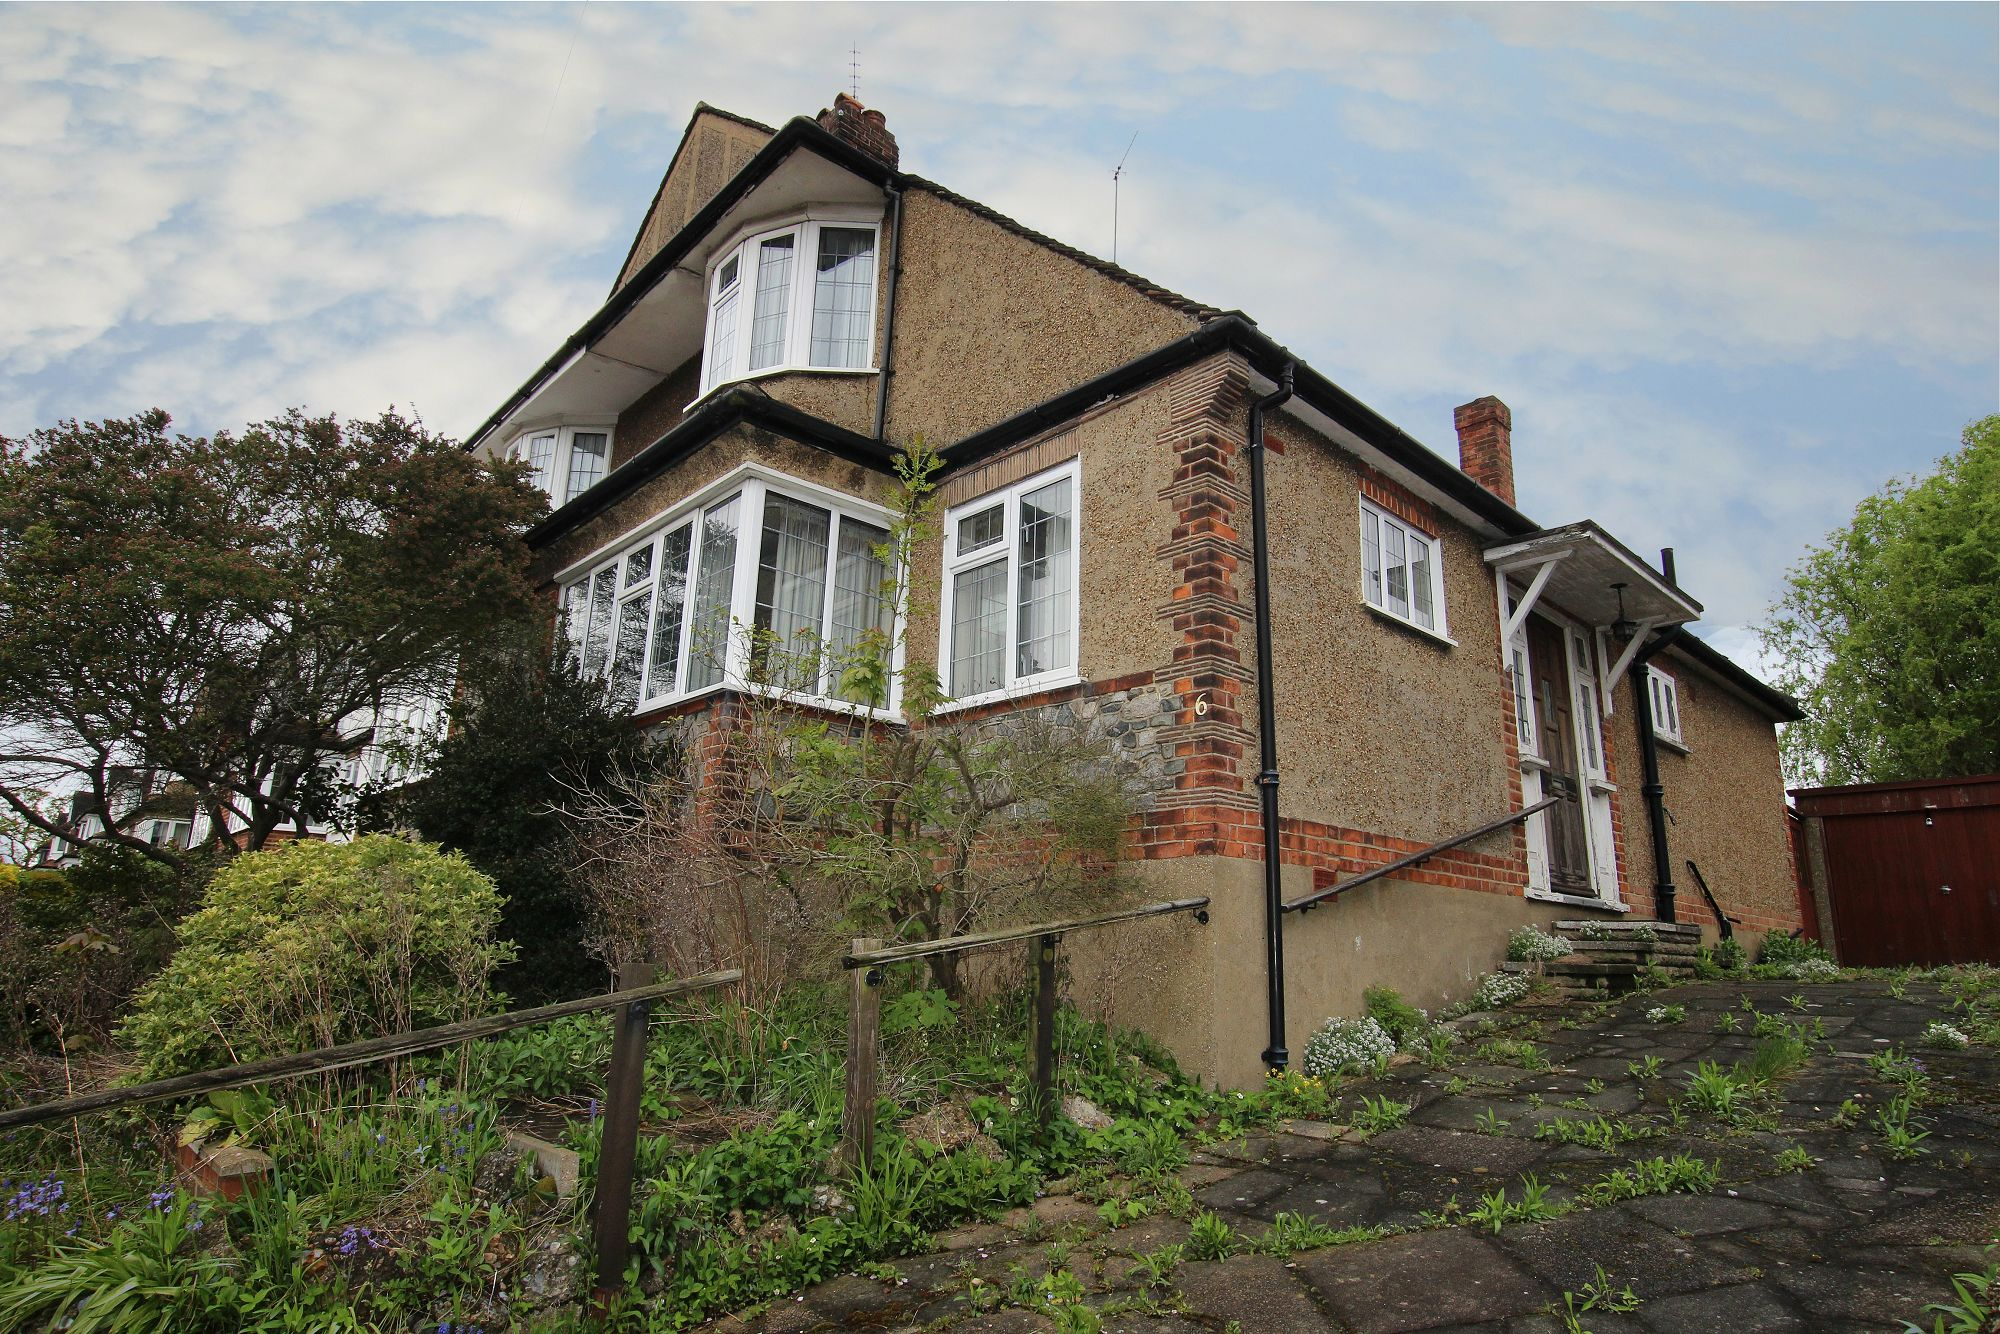 Oak Tree Drive, London, N20 8QH